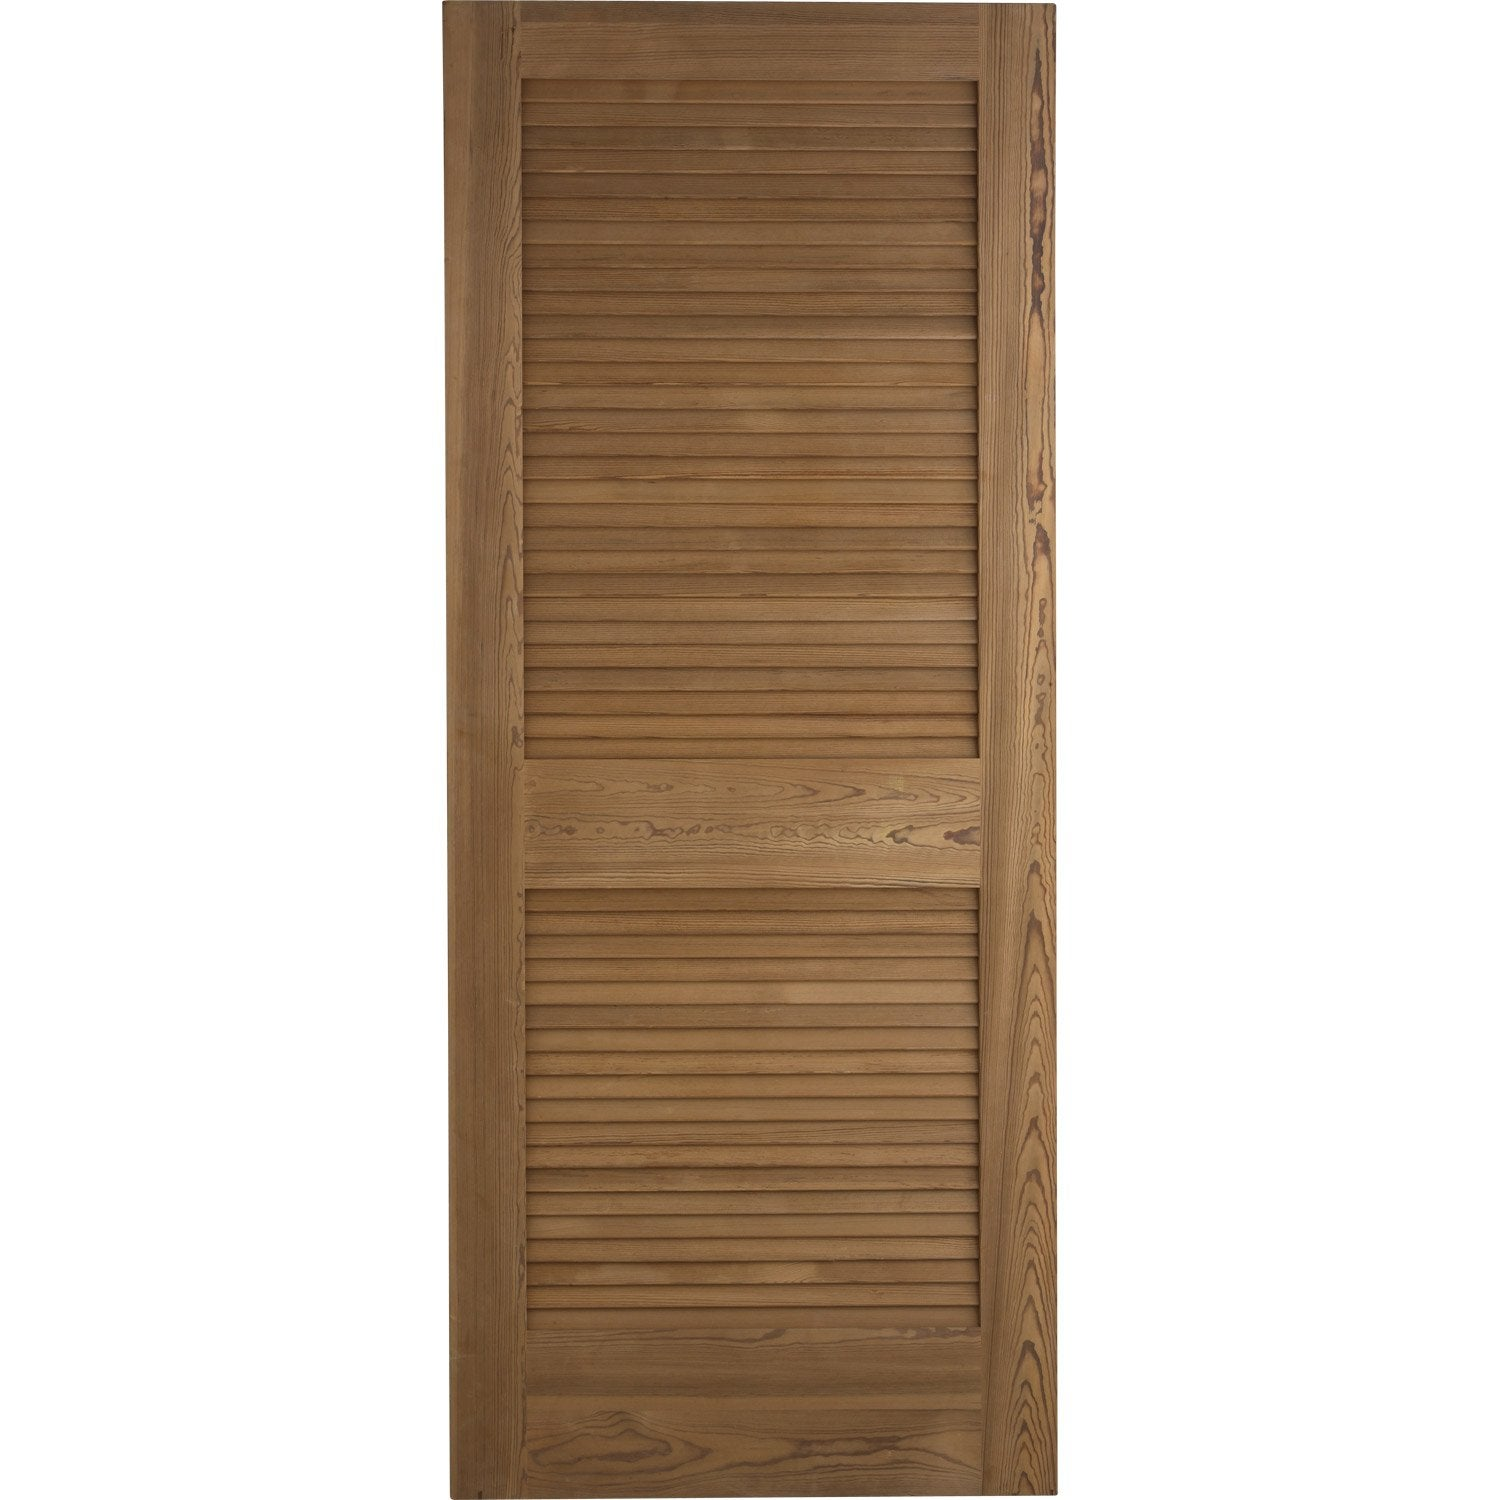 Porte coulissante pin plaqu marron java artens 204 x 73 - Porte leroy merlin interieur ...